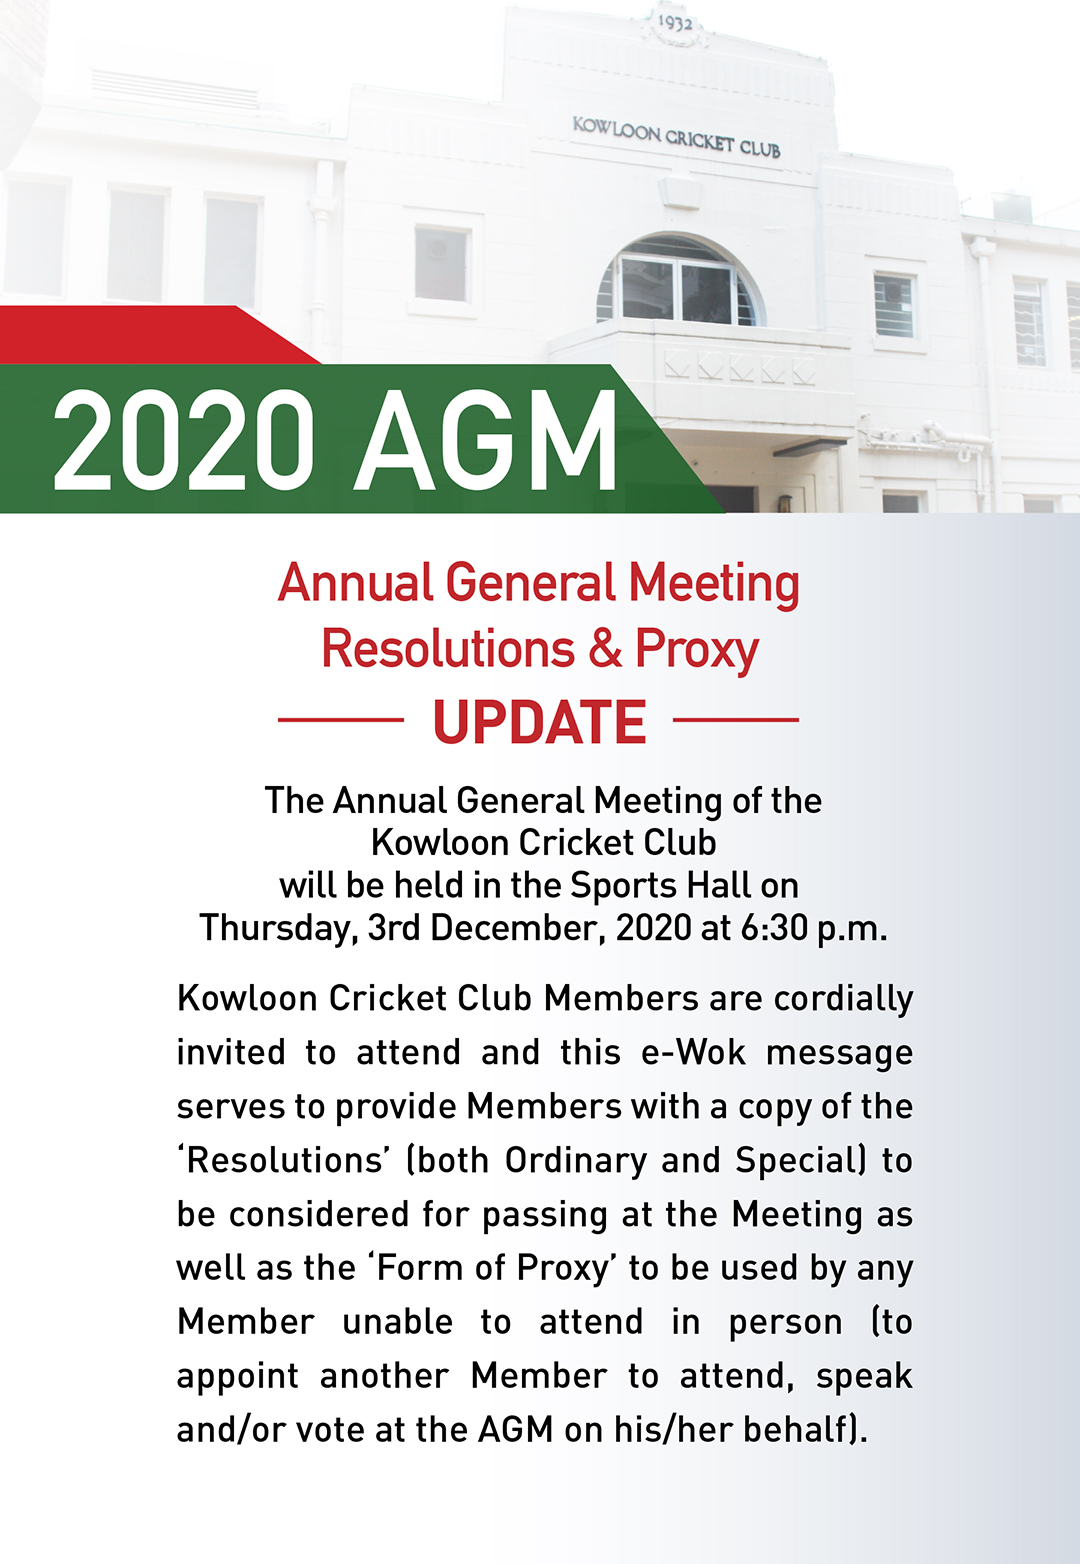 20201120-Notice of AGM Proxy-eWOK-update